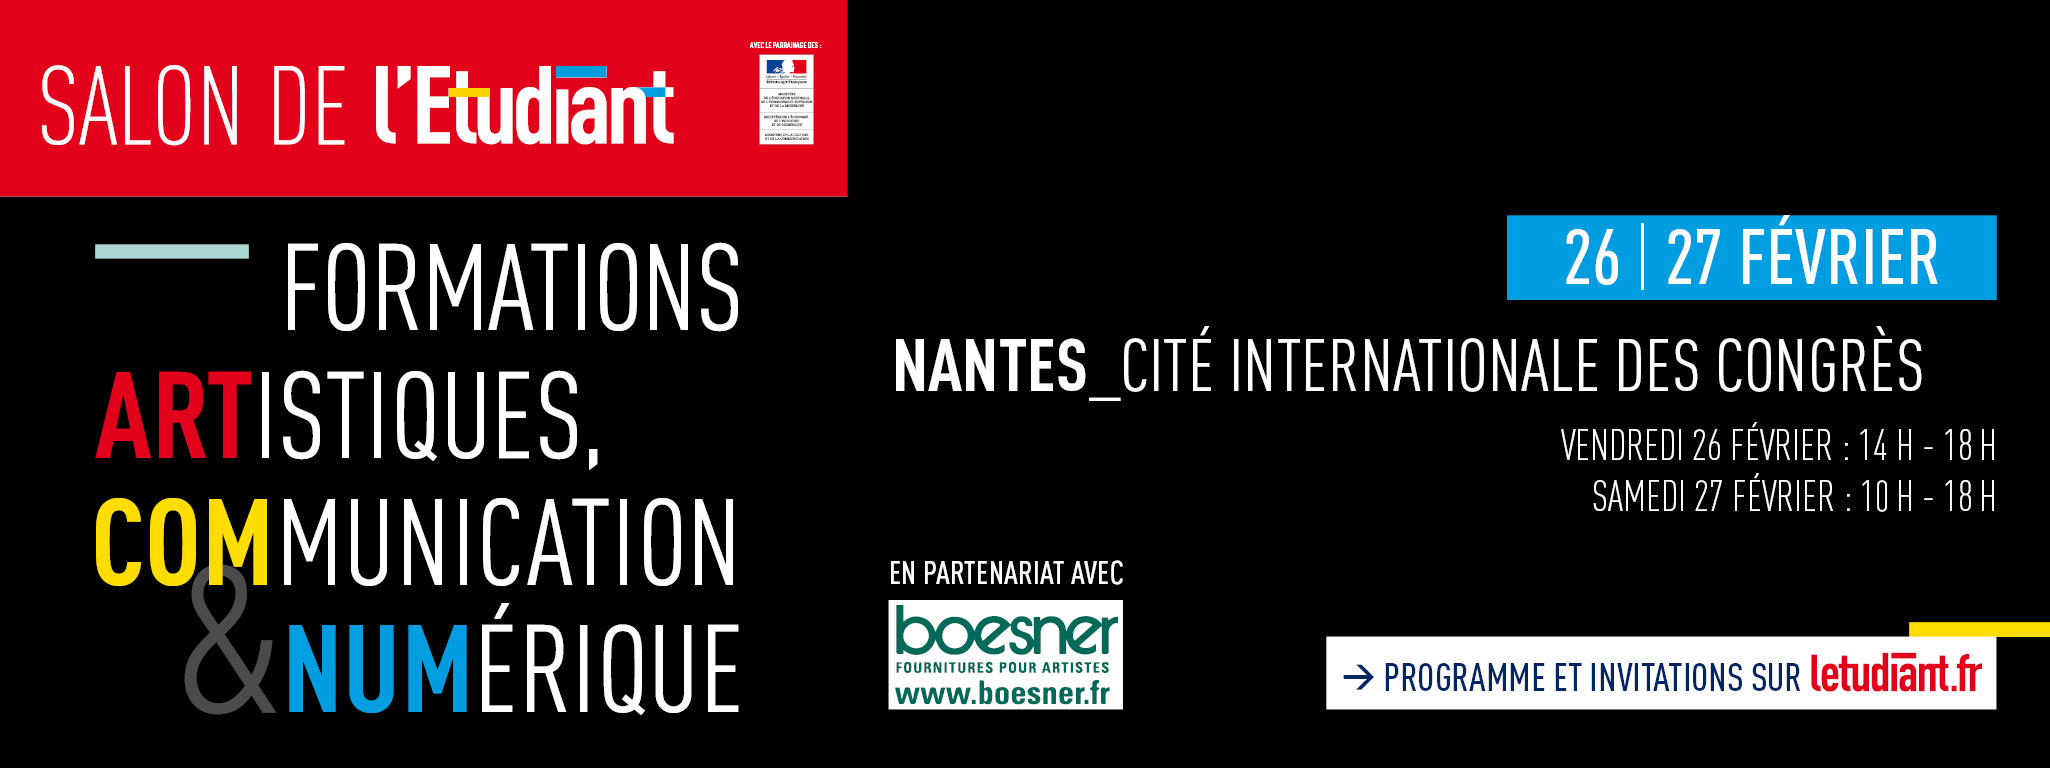 Salon étudiant Nantes 2016 Salon étudiant Nantes 2016